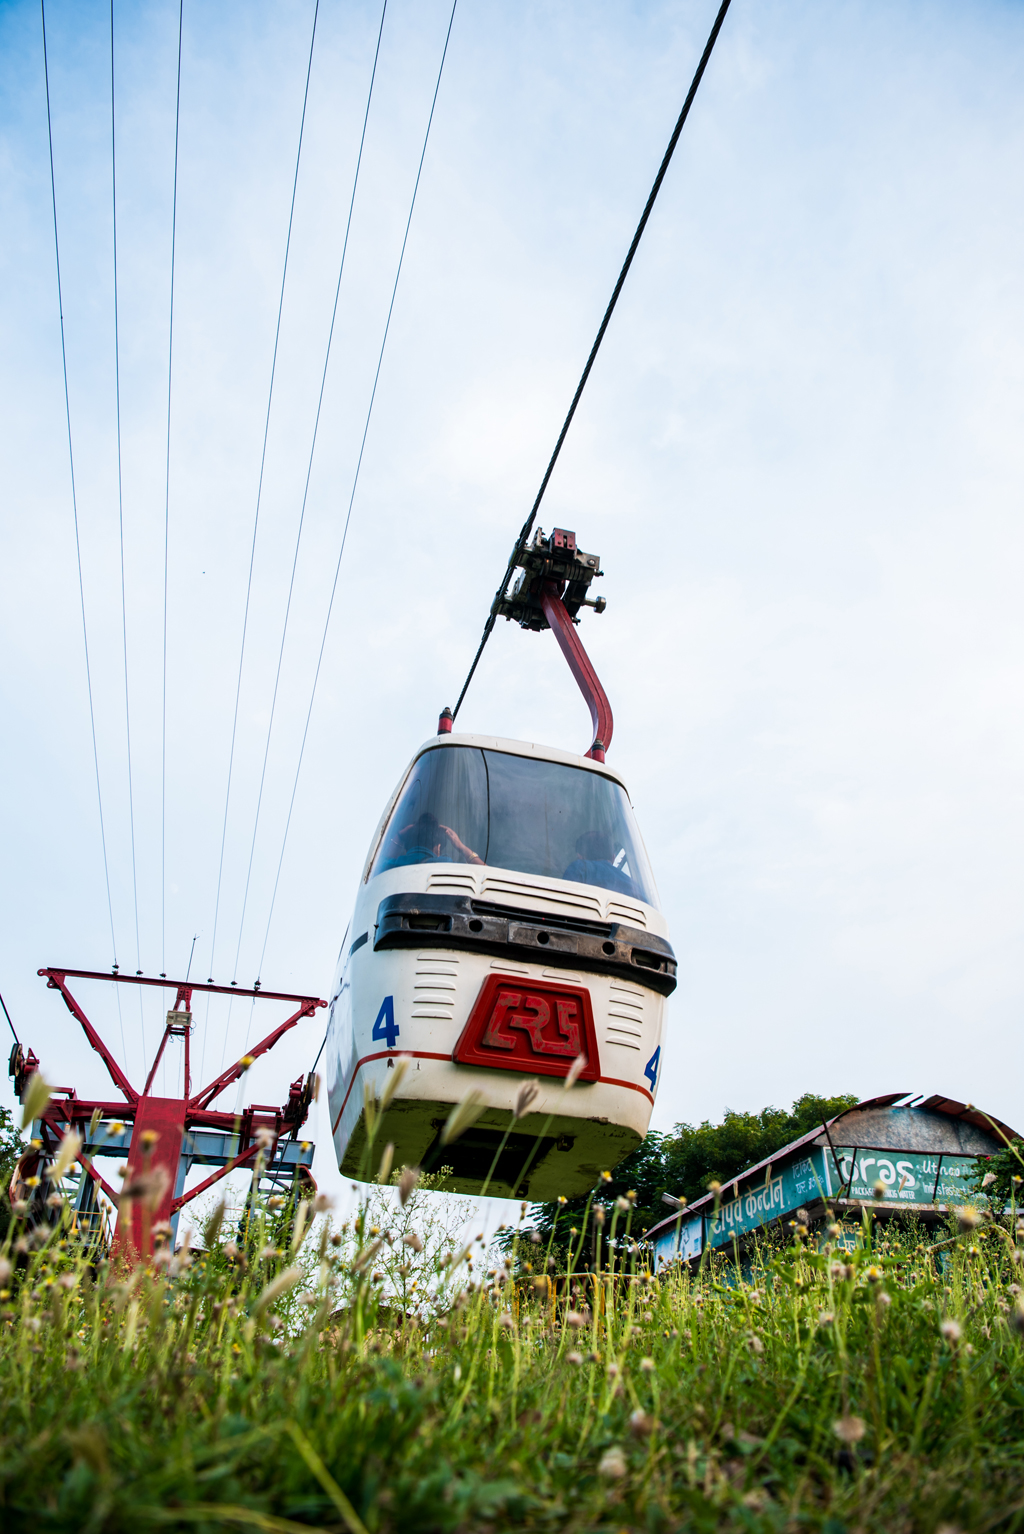 The cable car offers a great view of Dhuandhar Falls.